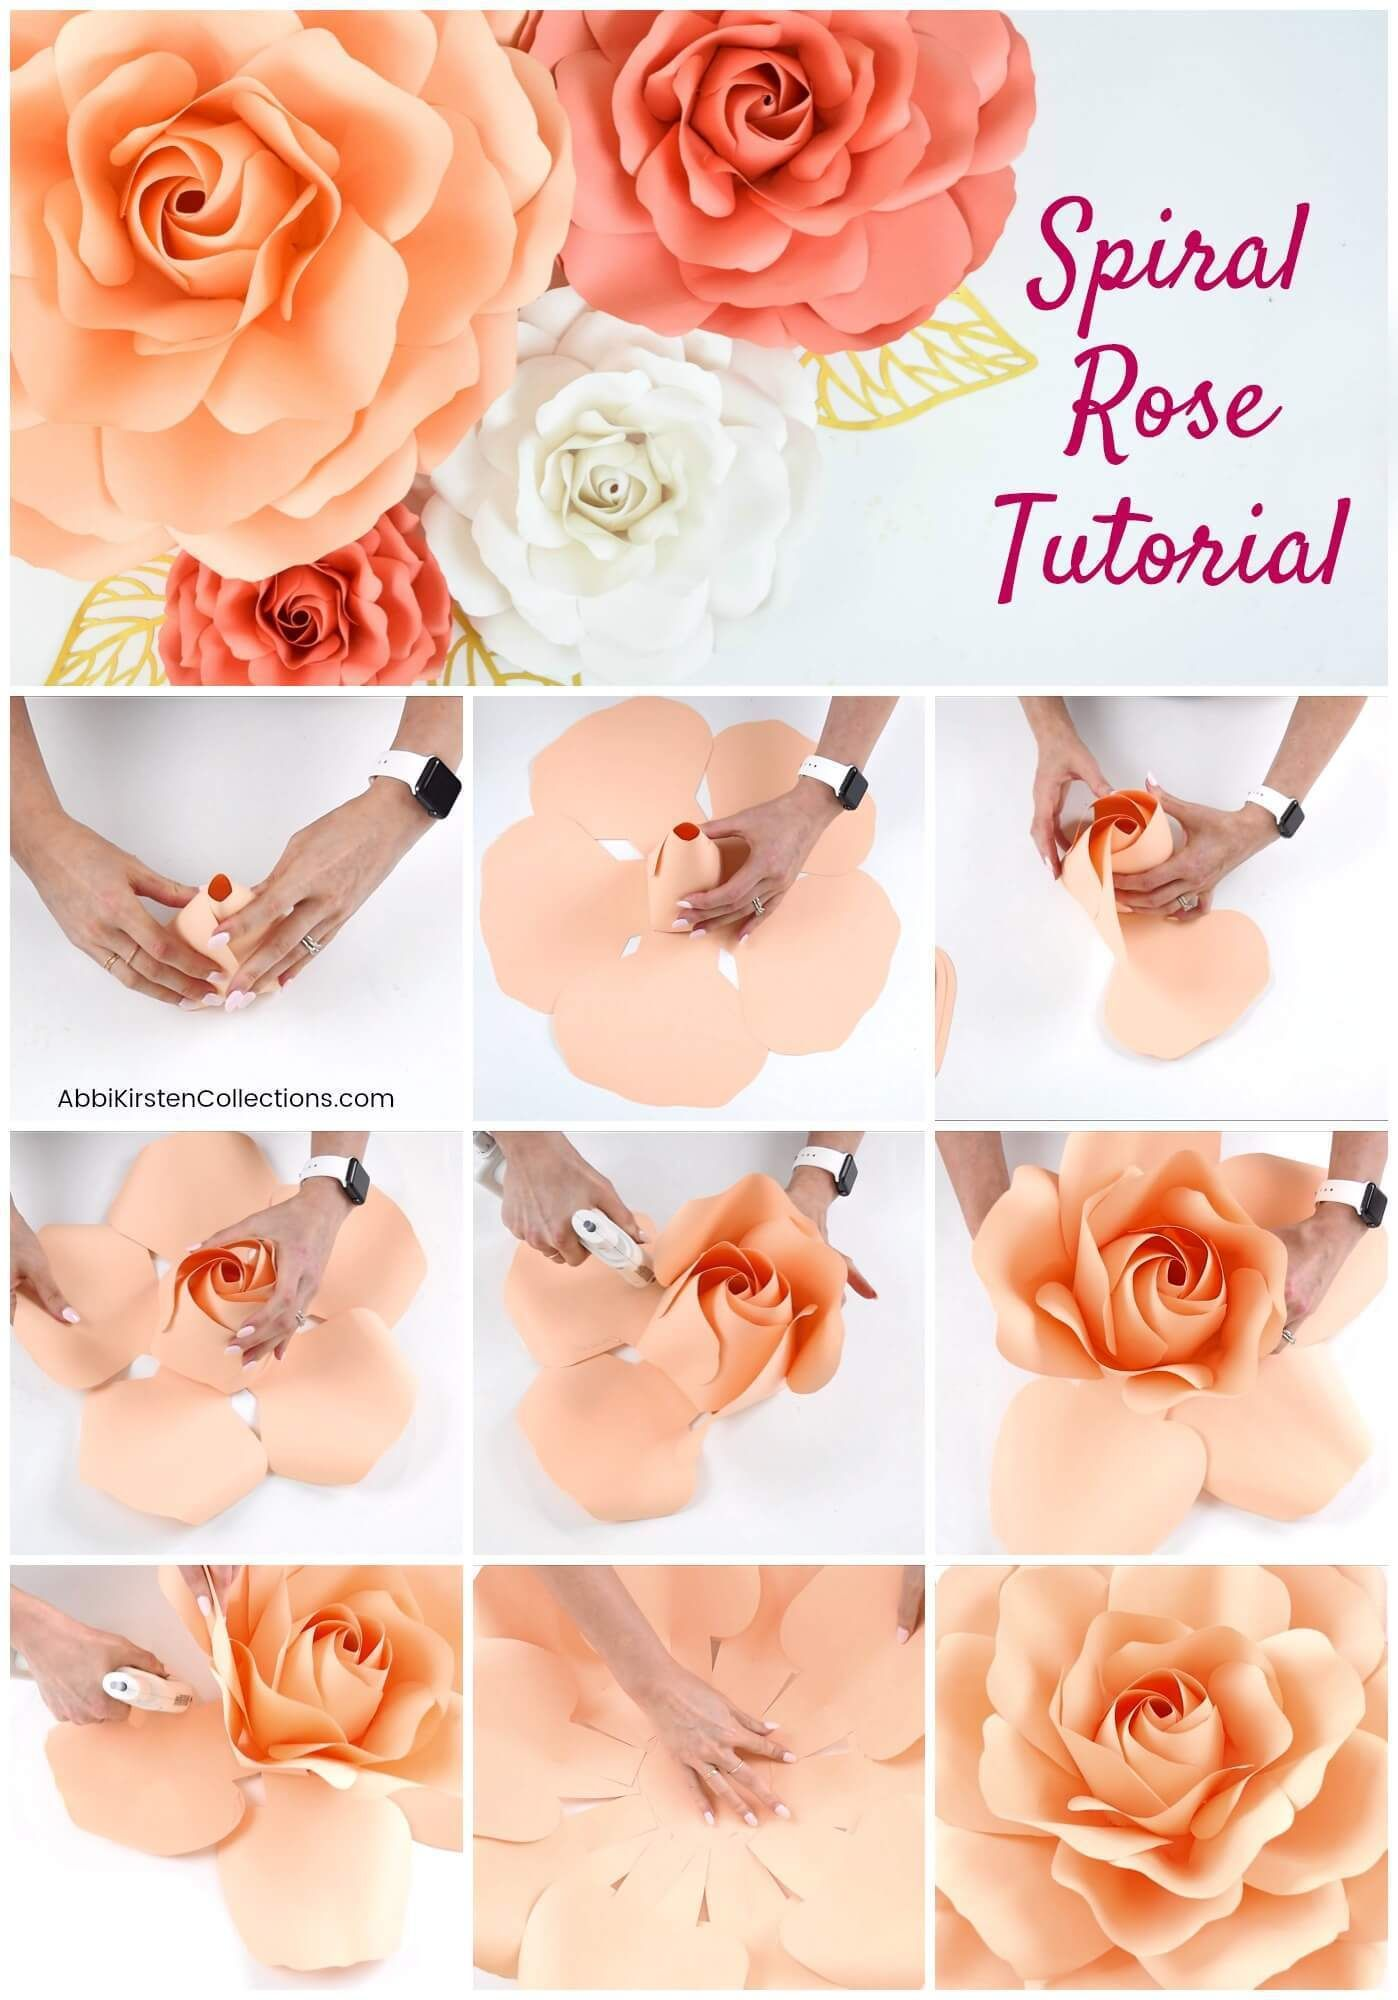 Making Paper Roses How To Make Giant Spiral Center Paper Roses Paper Roses Diy Paper Flowers Diy Paper Rose Template